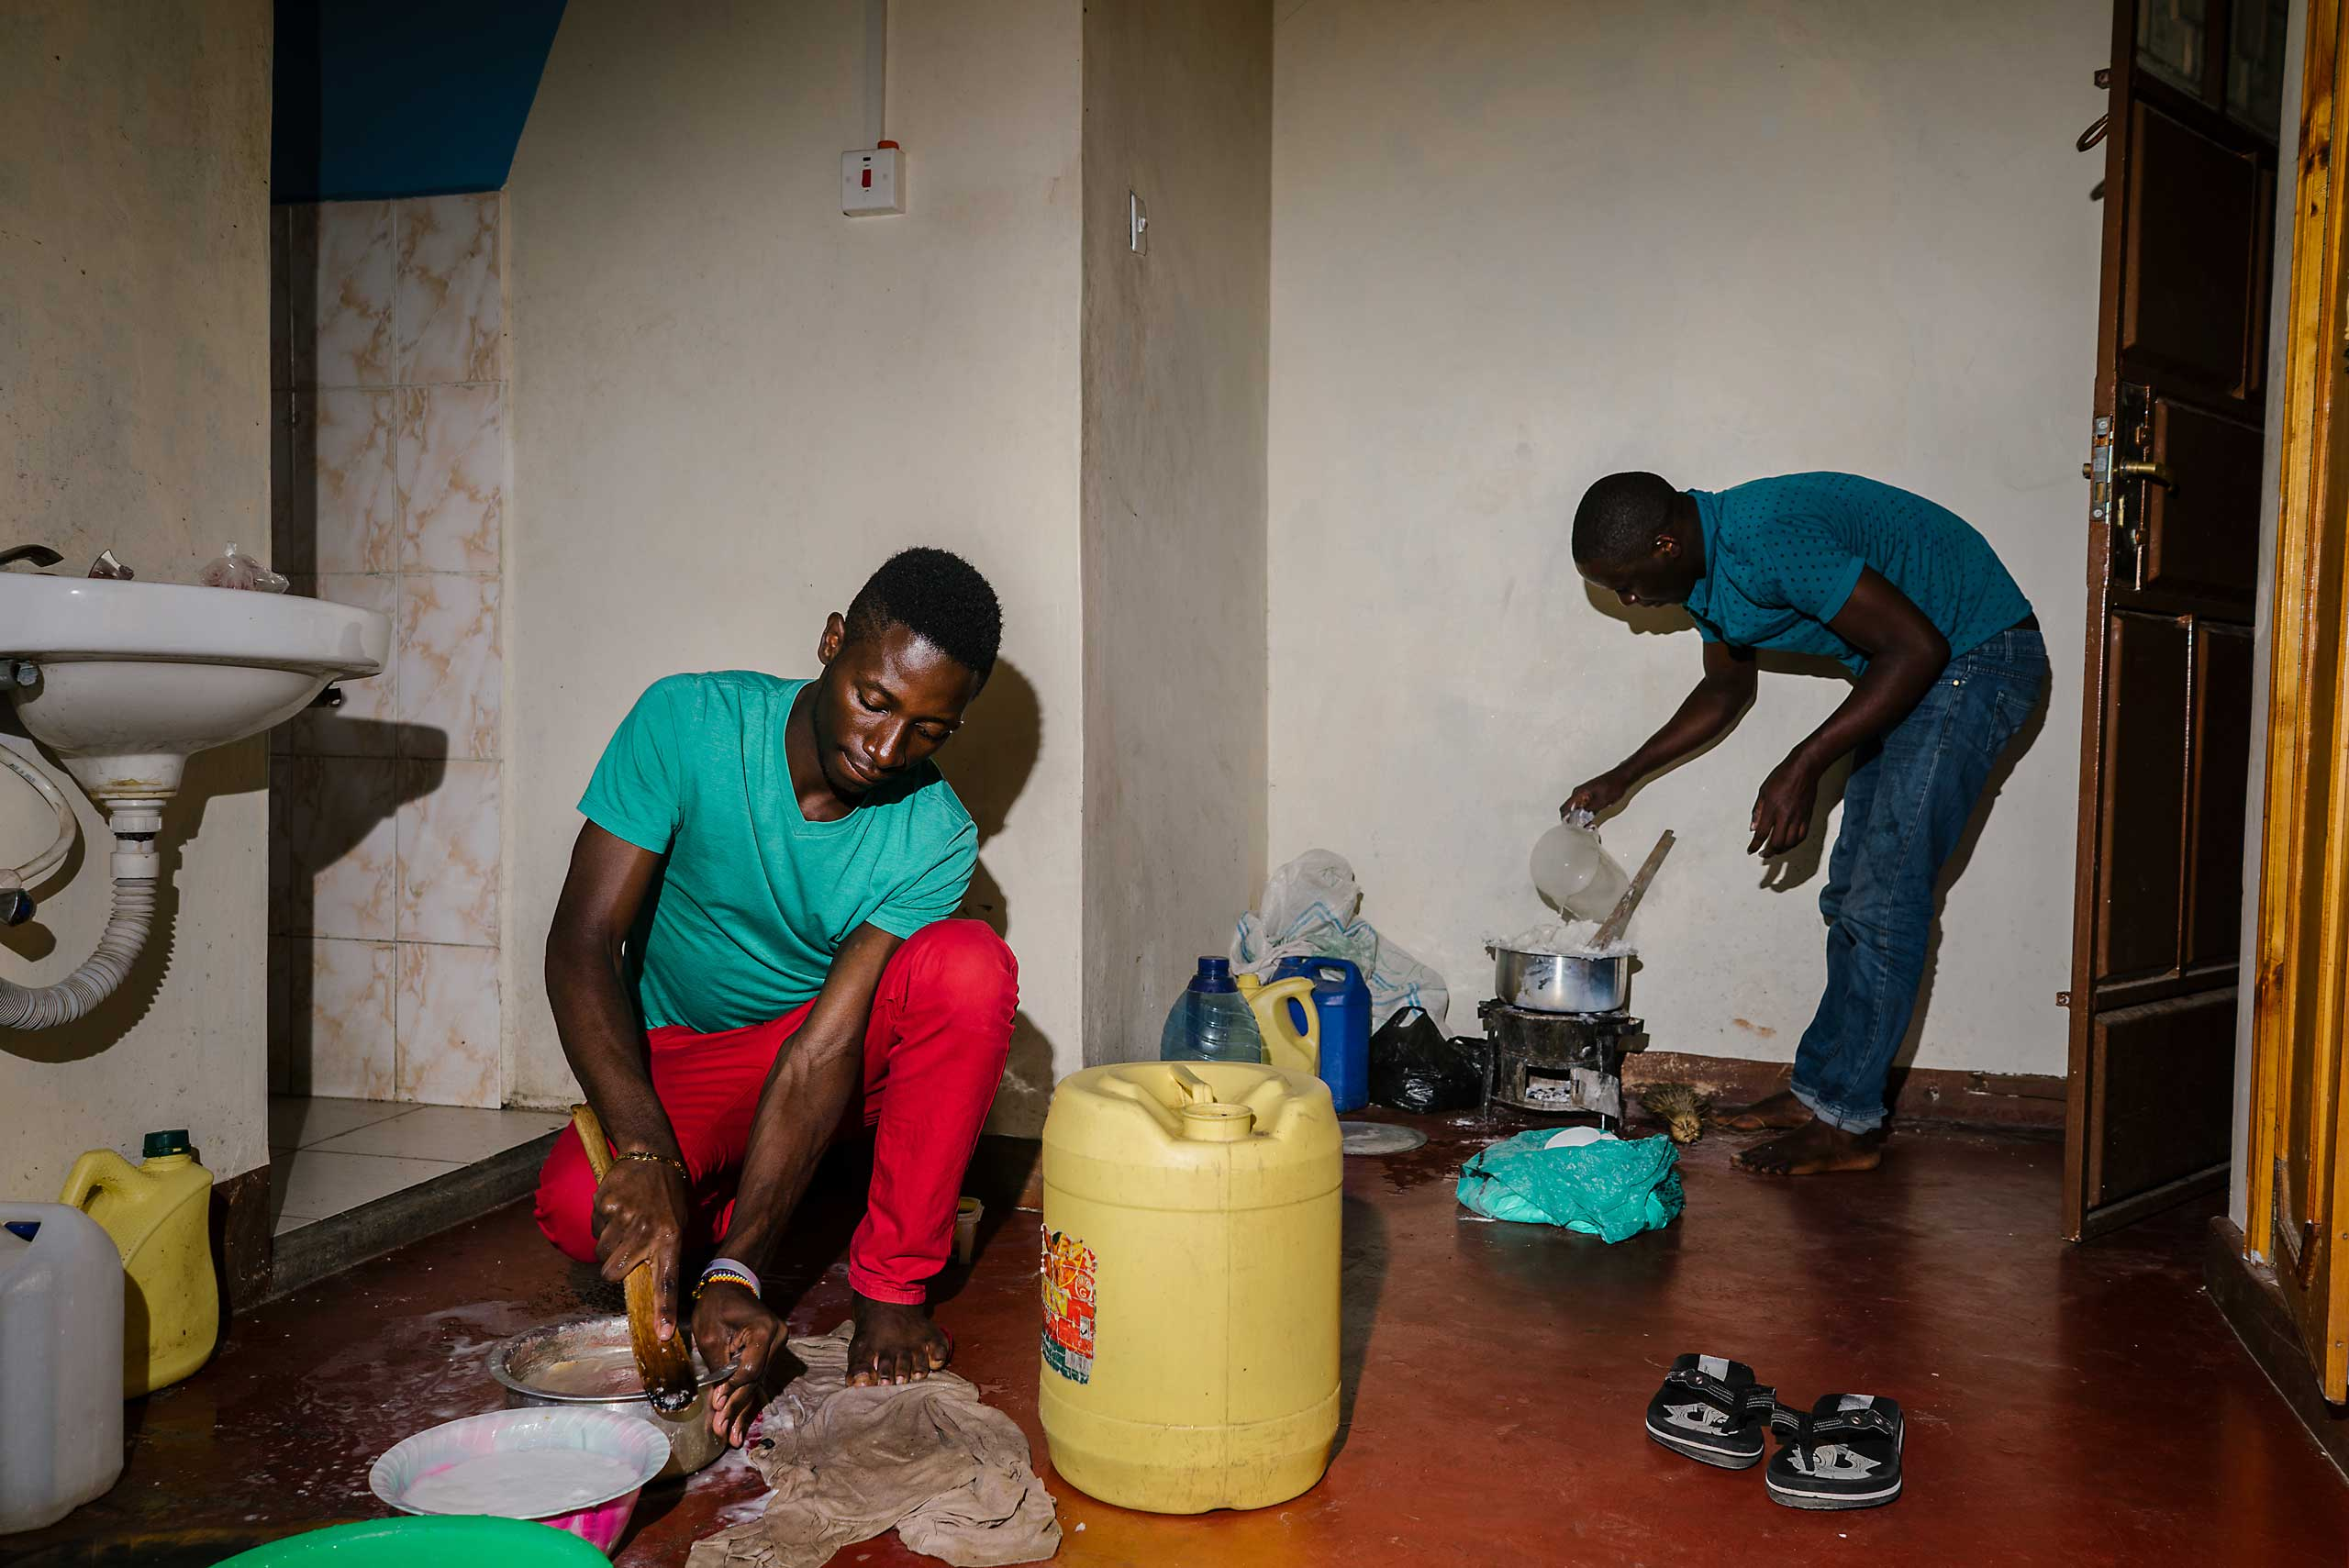 S. and J. prepare food for themselves and others in the house they lived in outside of Nairobi.